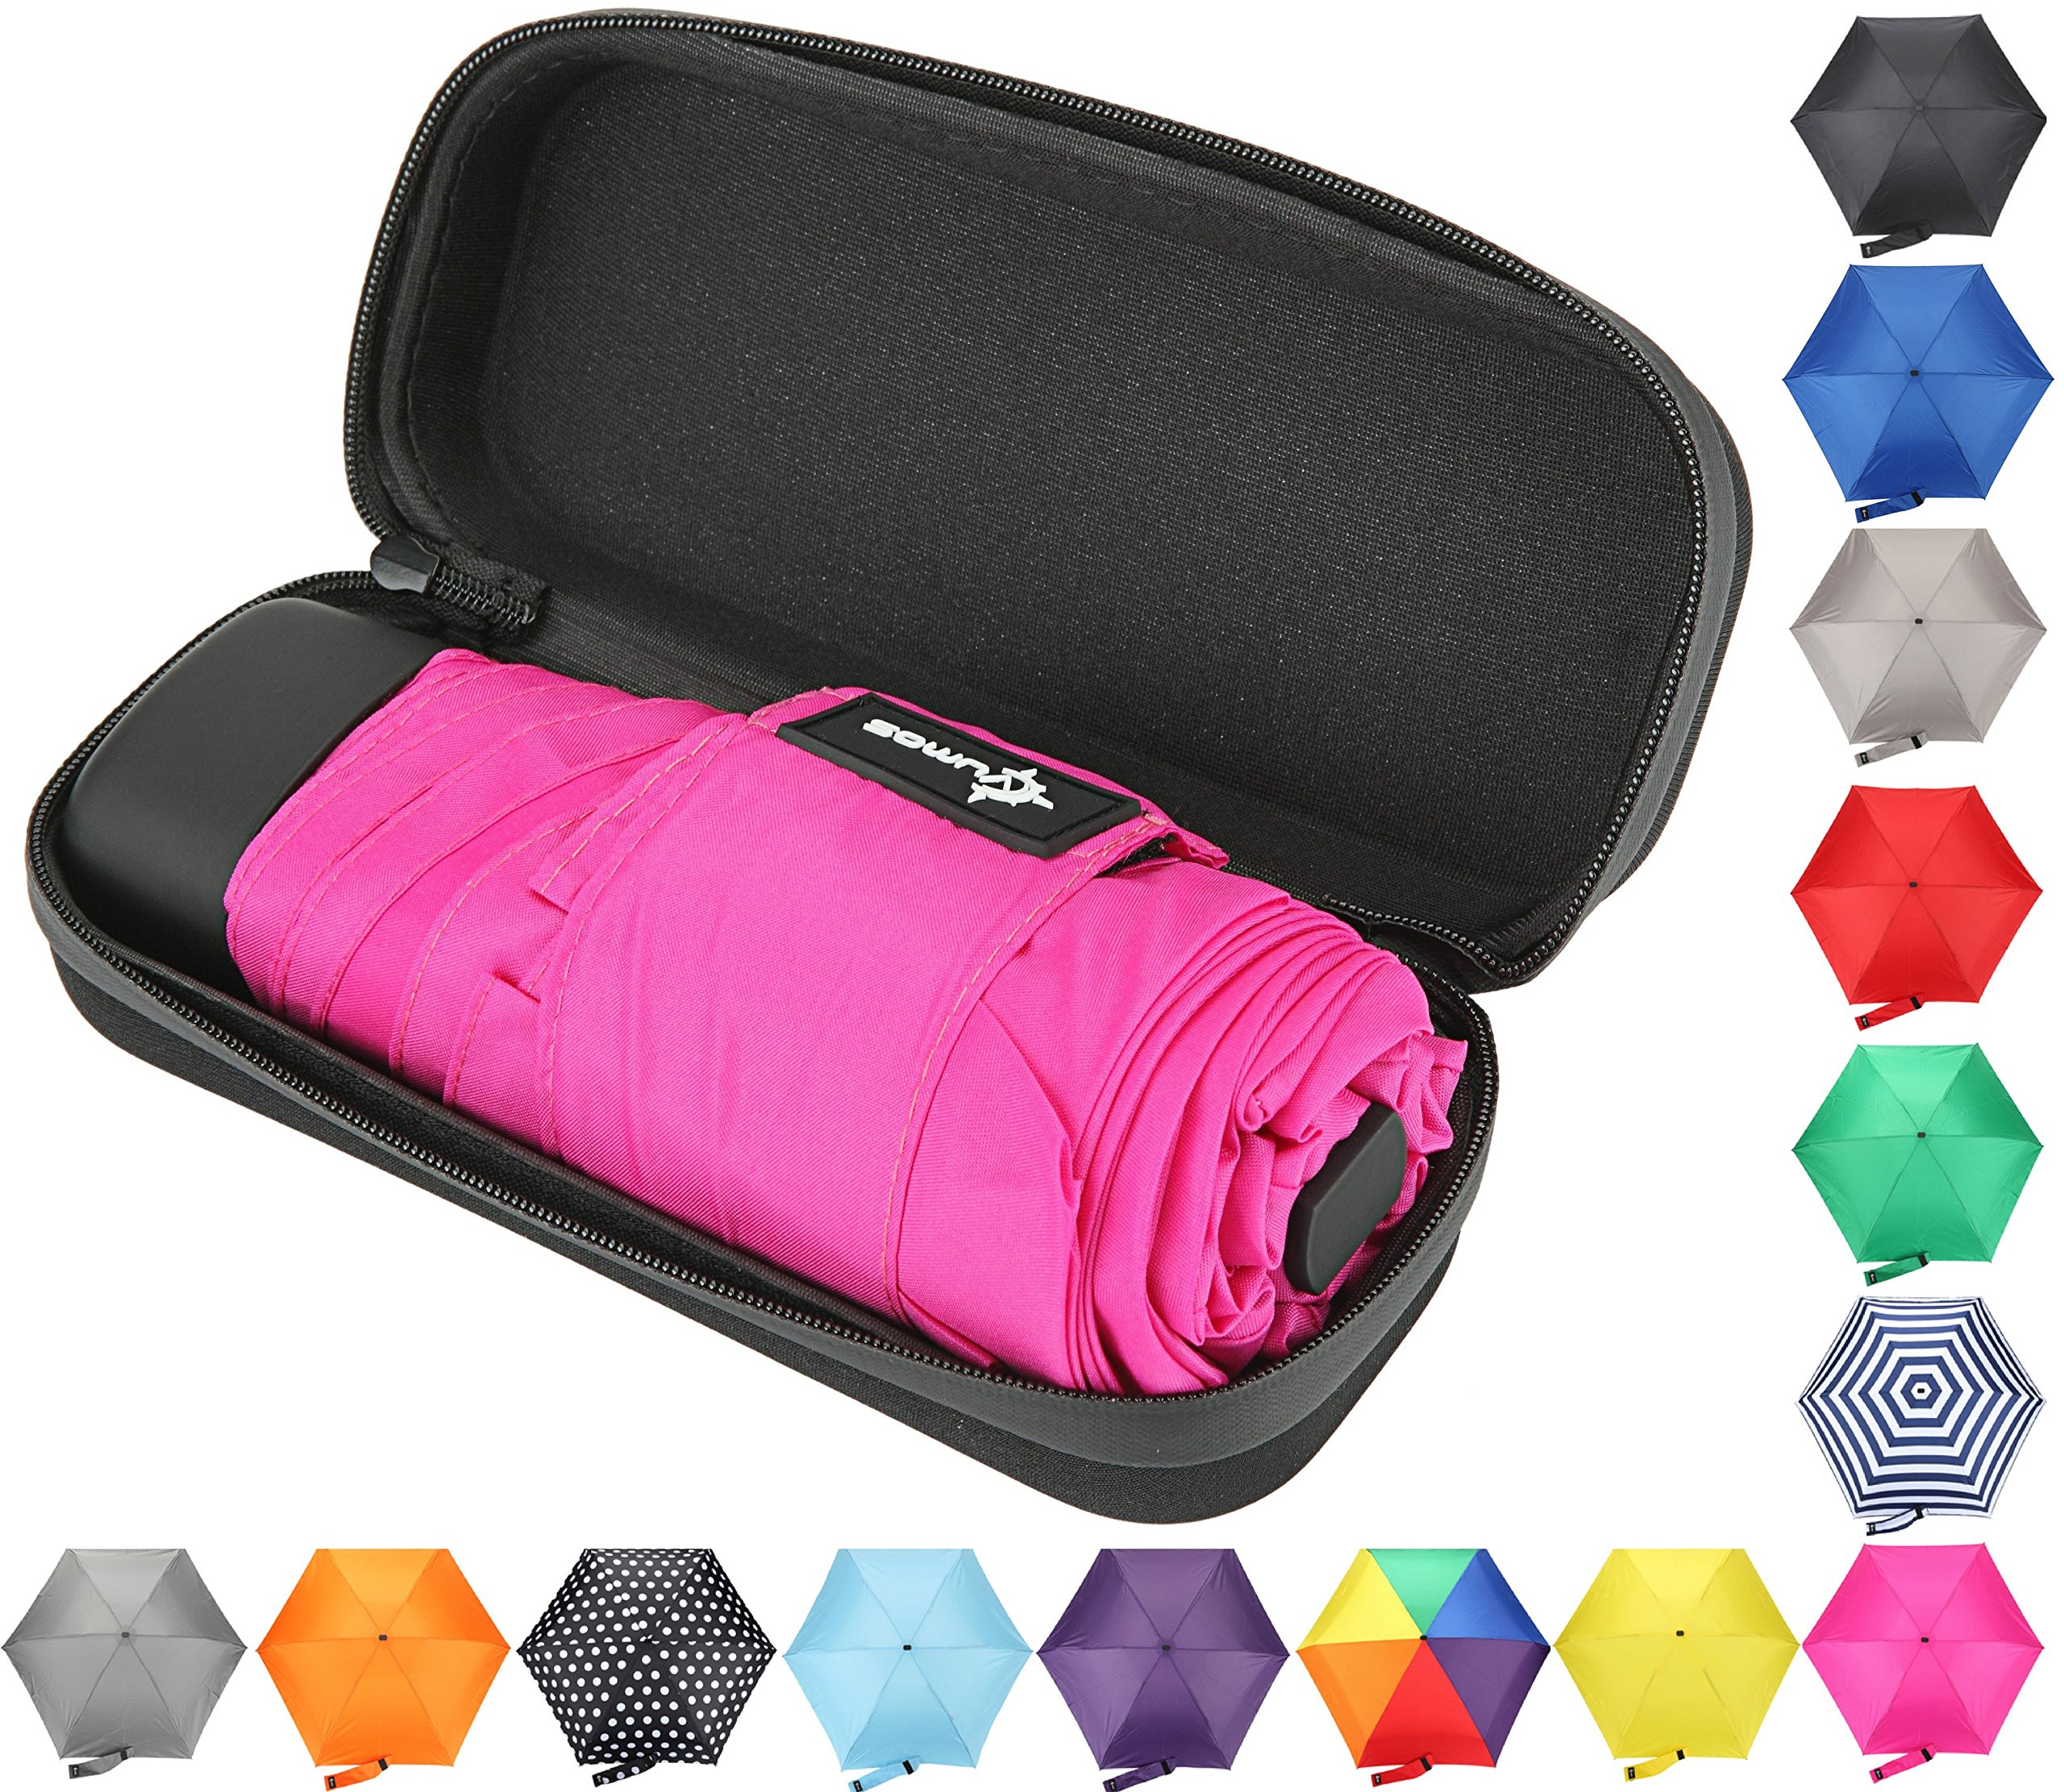 Travel Umbrella with Waterproof Case - Small, Compact Umbrella for Backpacks, Purses, Briefcases or Cars - Versatile, Unisex Design - Made with Water-Resistant Pongee Fabric - Premium Quality - Pink